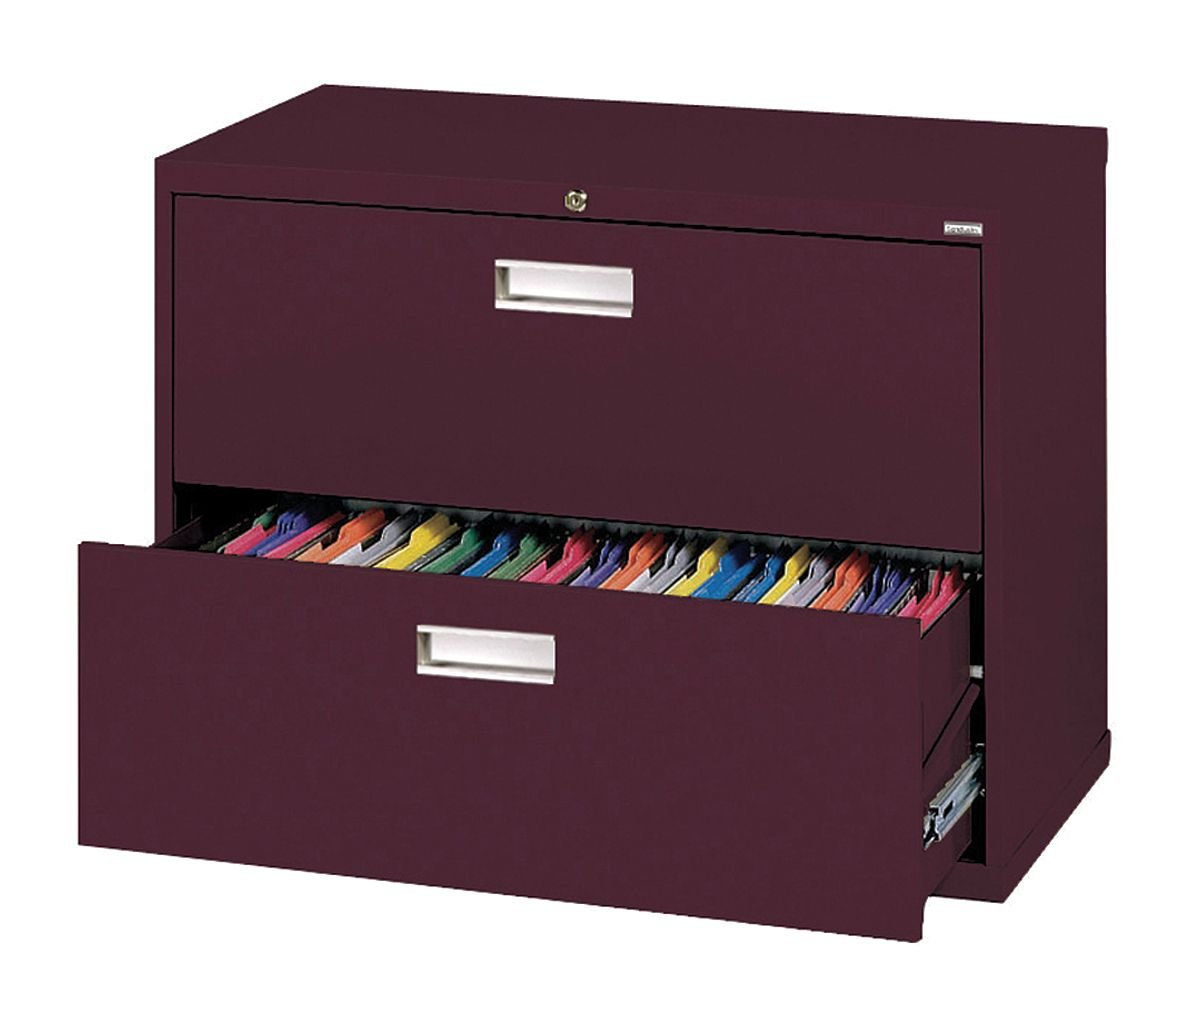 Sandusky Lee LF6A362-03 600 Series 2 Drawer Lateral File Cabinet